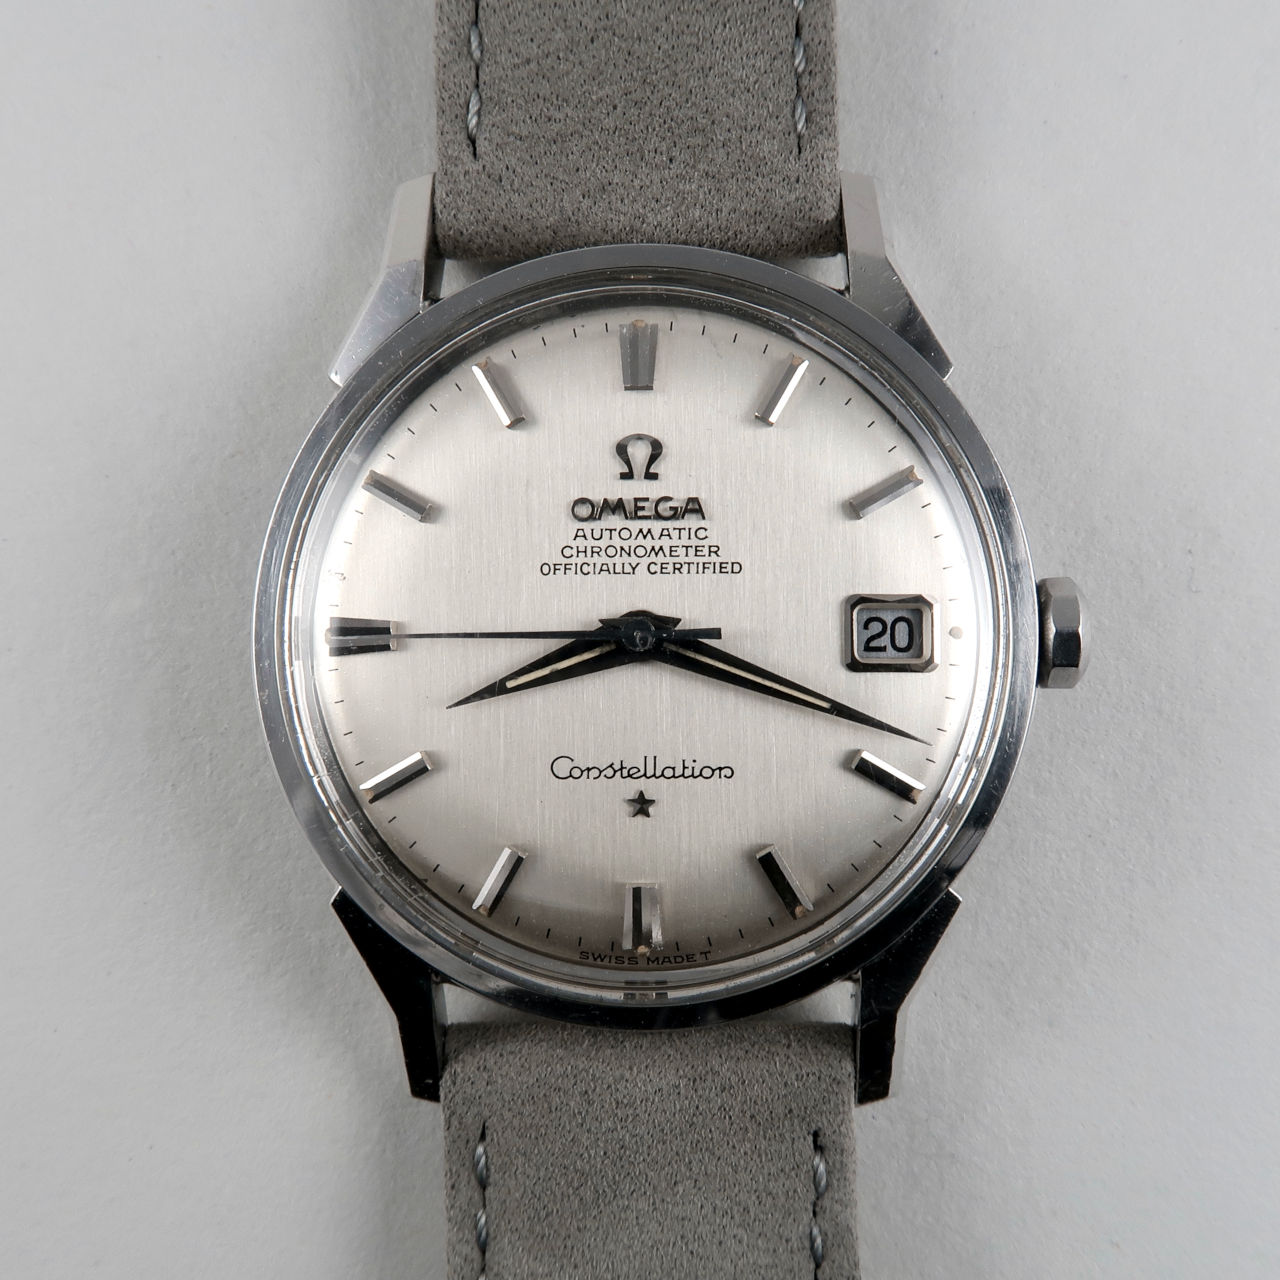 Omega Constellation Ref. 168.005 circa 1967 steel